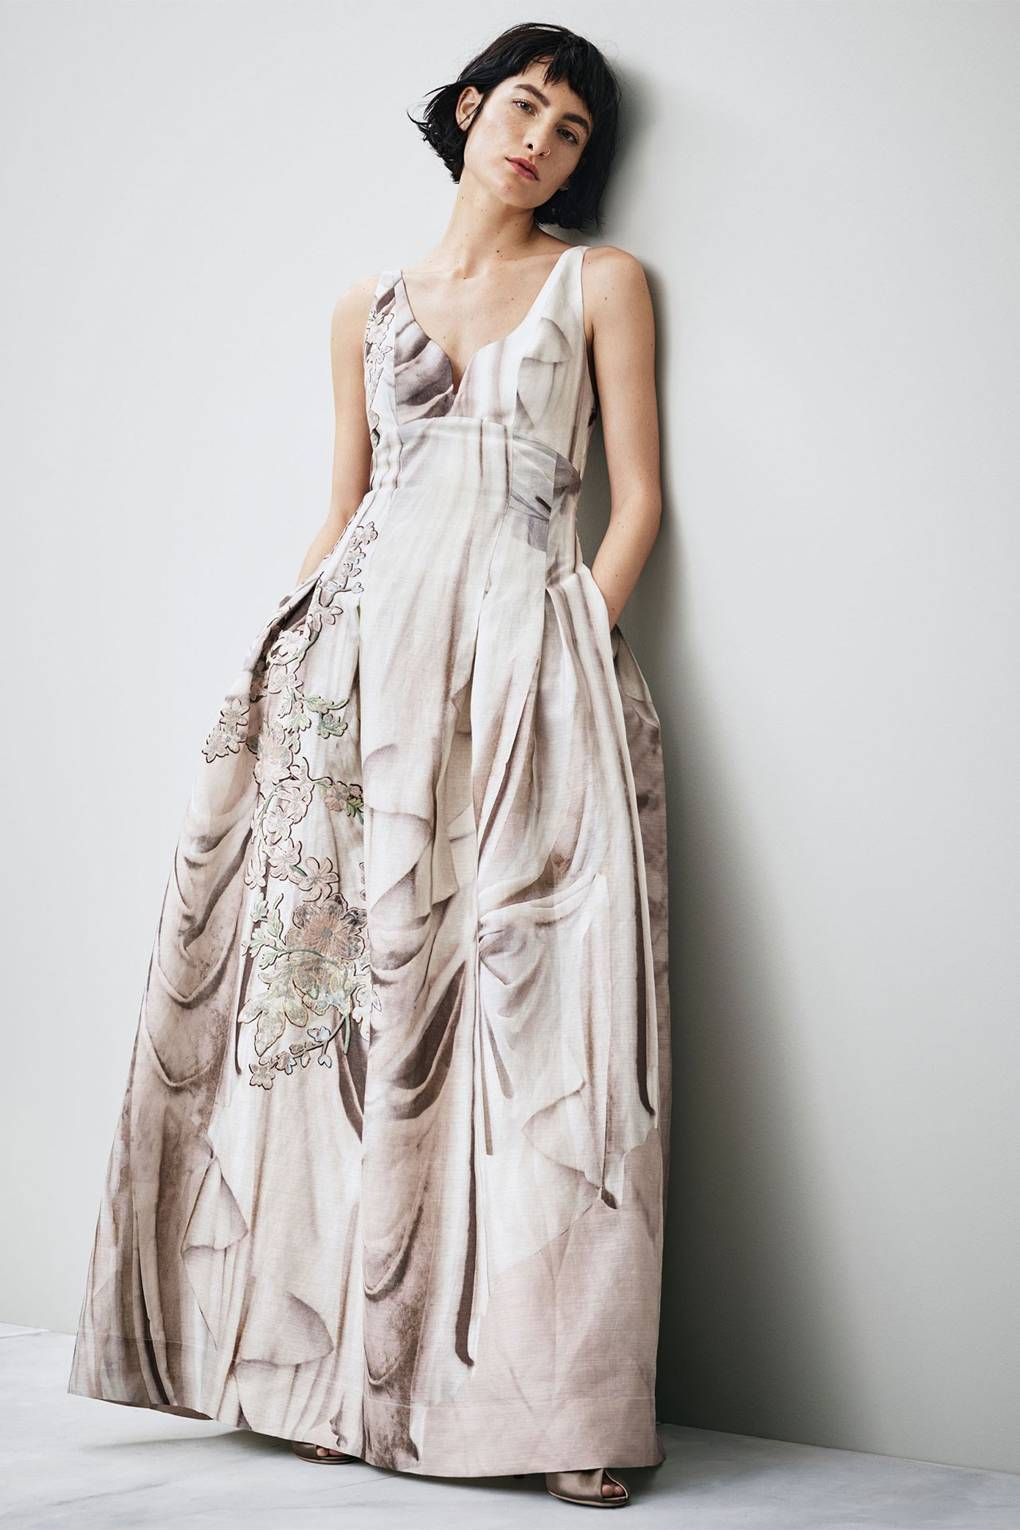 Hm Wedding Dress.H M Wedding Dresses In The Conscious Collection Bridal Designs